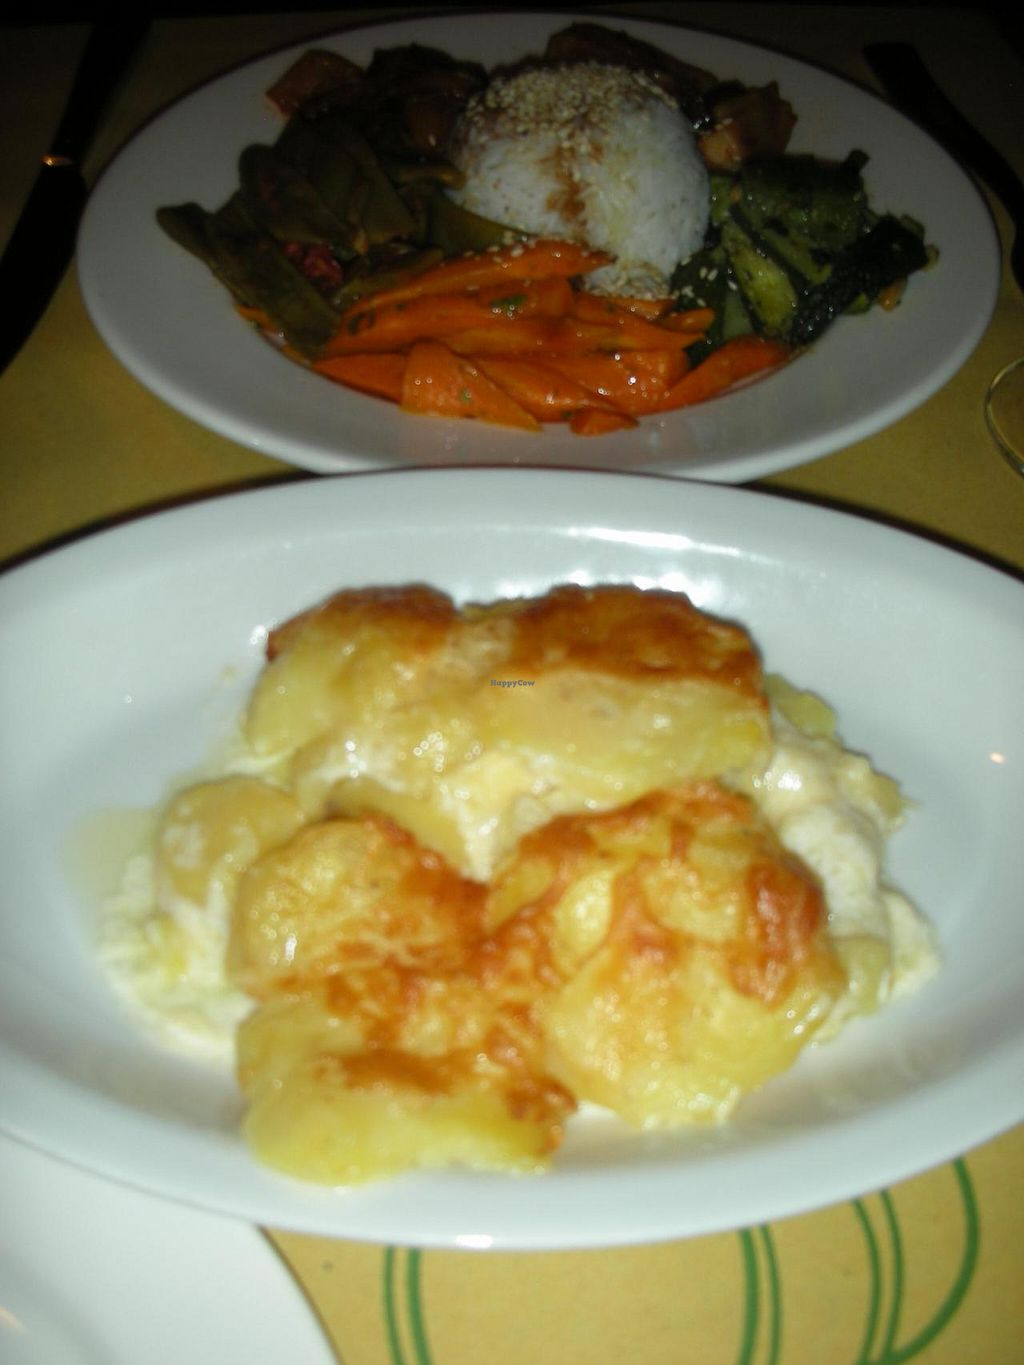 """Photo of La Zucca  by <a href=""""/members/profile/deadpledge"""">deadpledge</a> <br/>Vegetarian Platter and Potato Gratin <br/> June 8, 2014  - <a href='/contact/abuse/image/12774/71620'>Report</a>"""